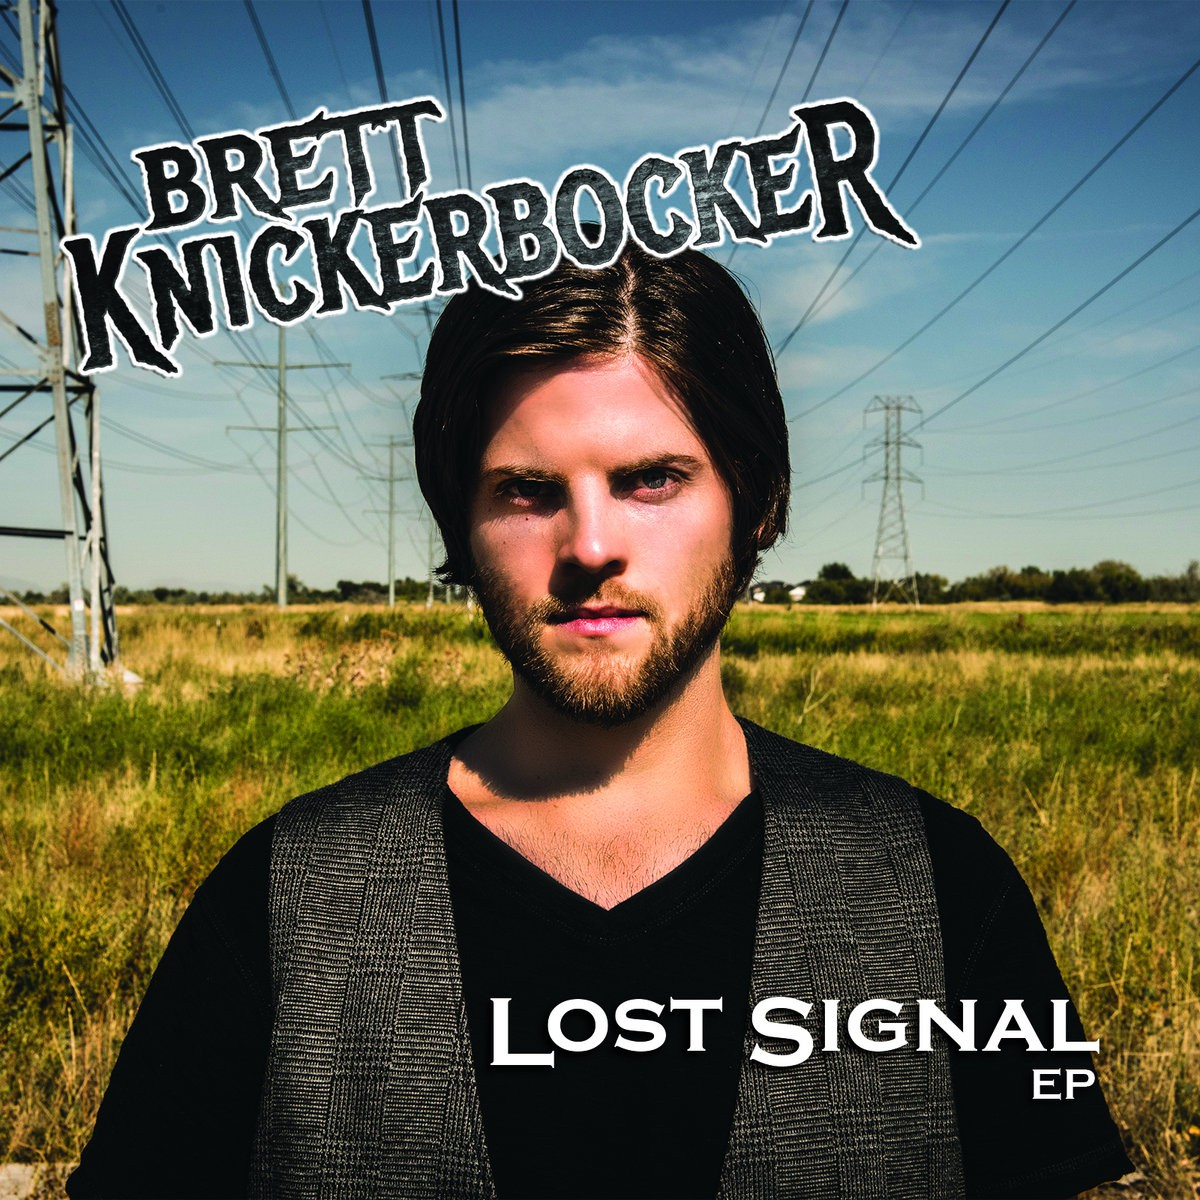 Brett Knickerbocker – Lost Signal